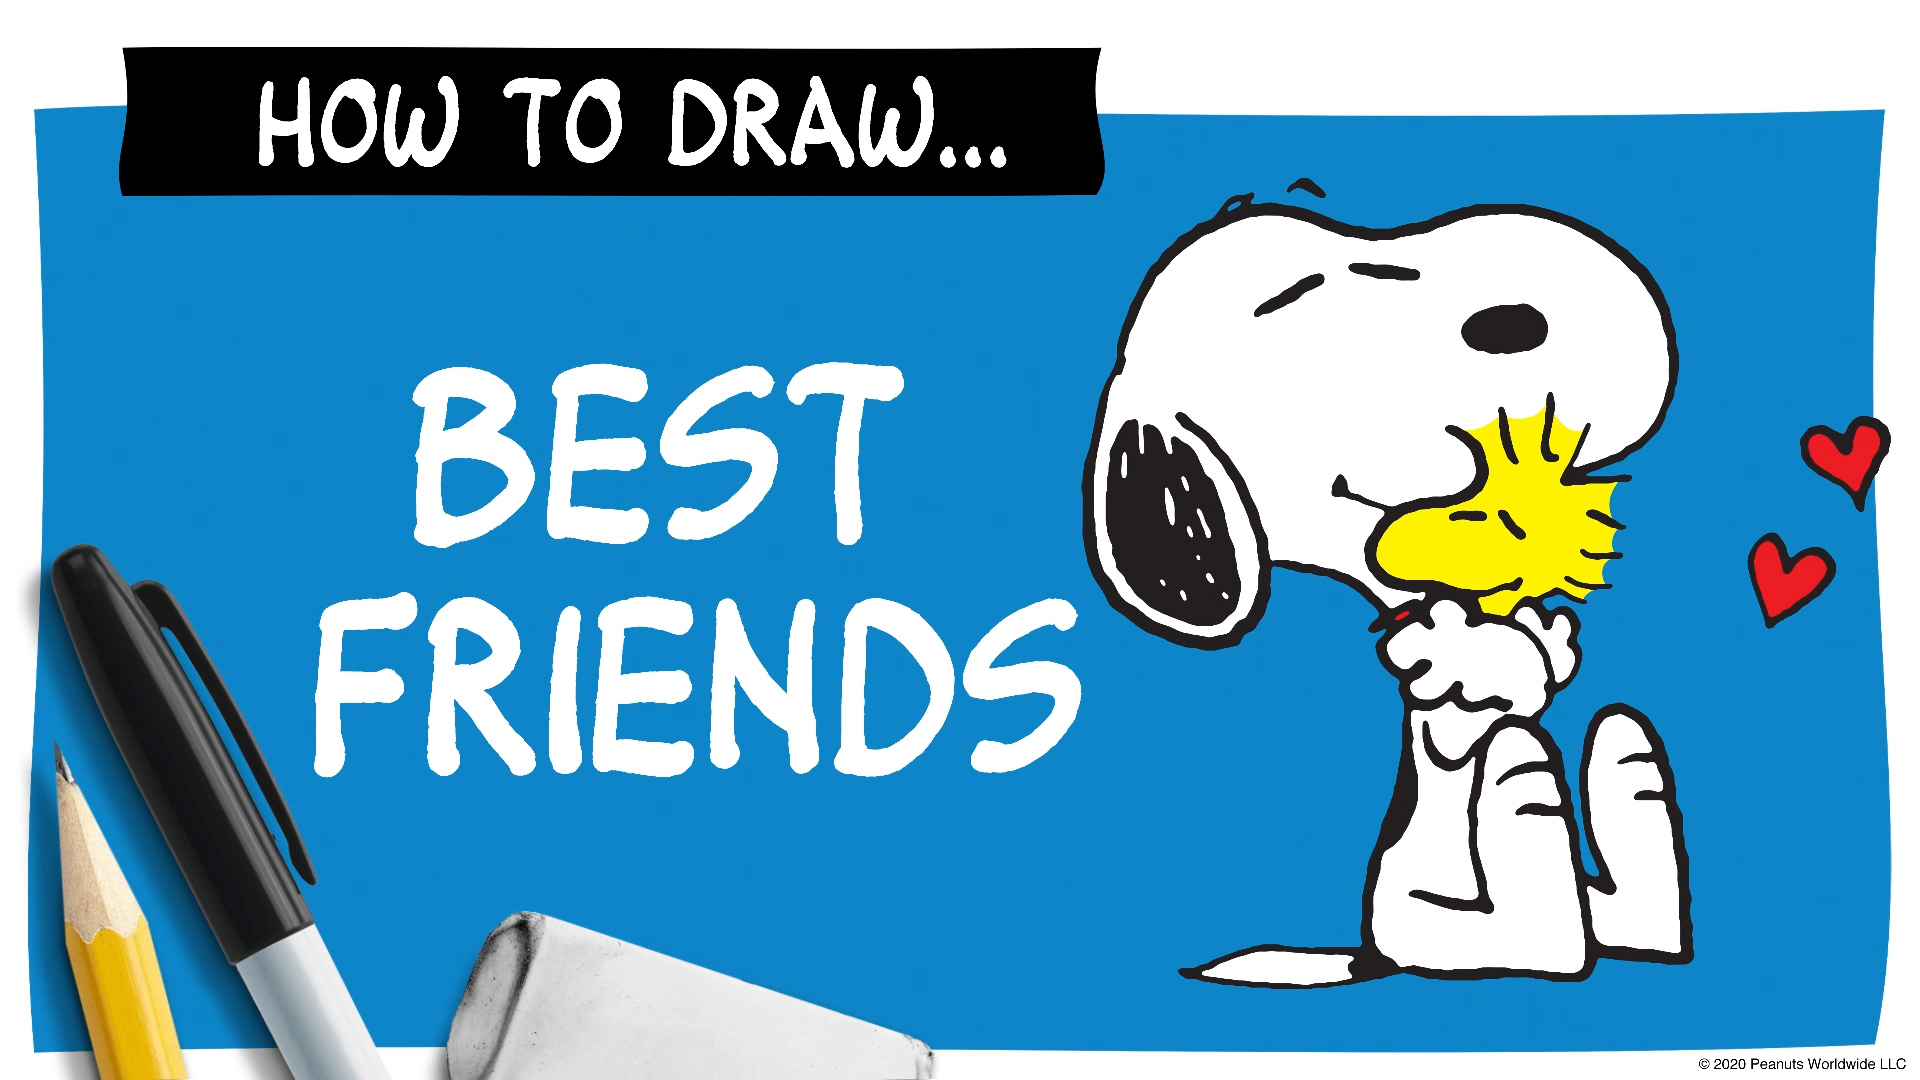 A black and white beagle hugging a little yellow bird next to a pen and pencil